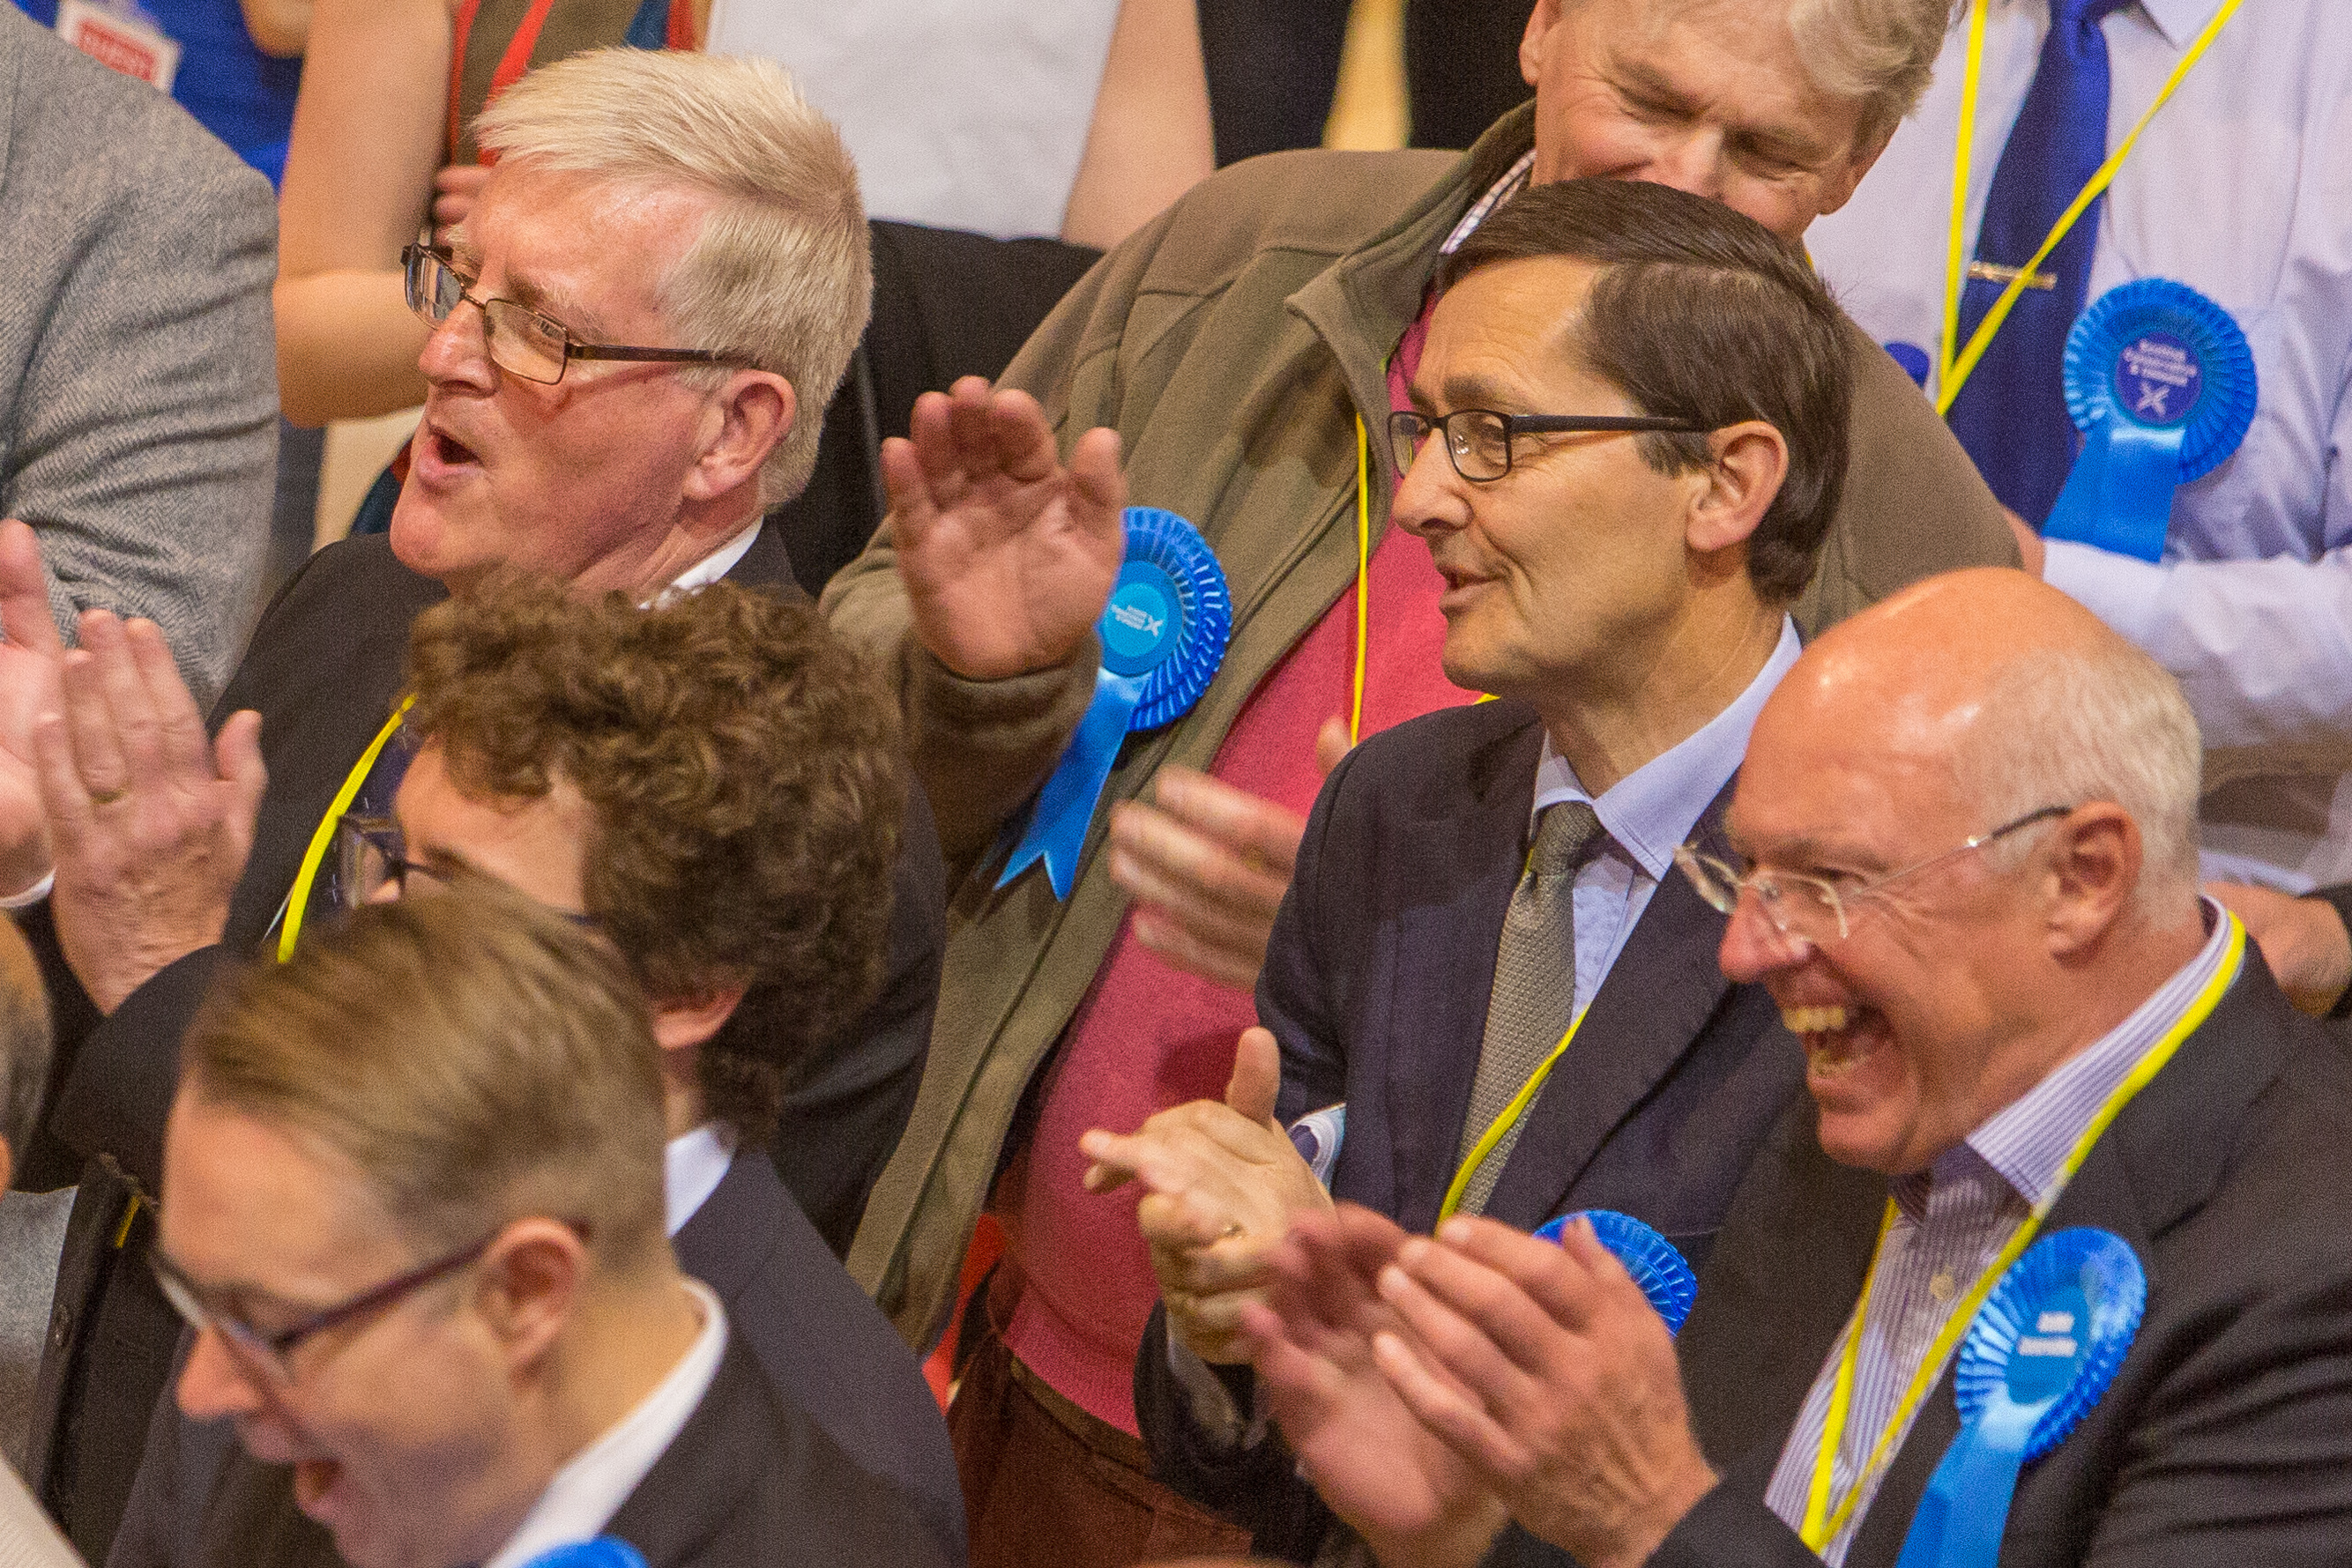 Happy faces among Conservative figures at the Fife Count.